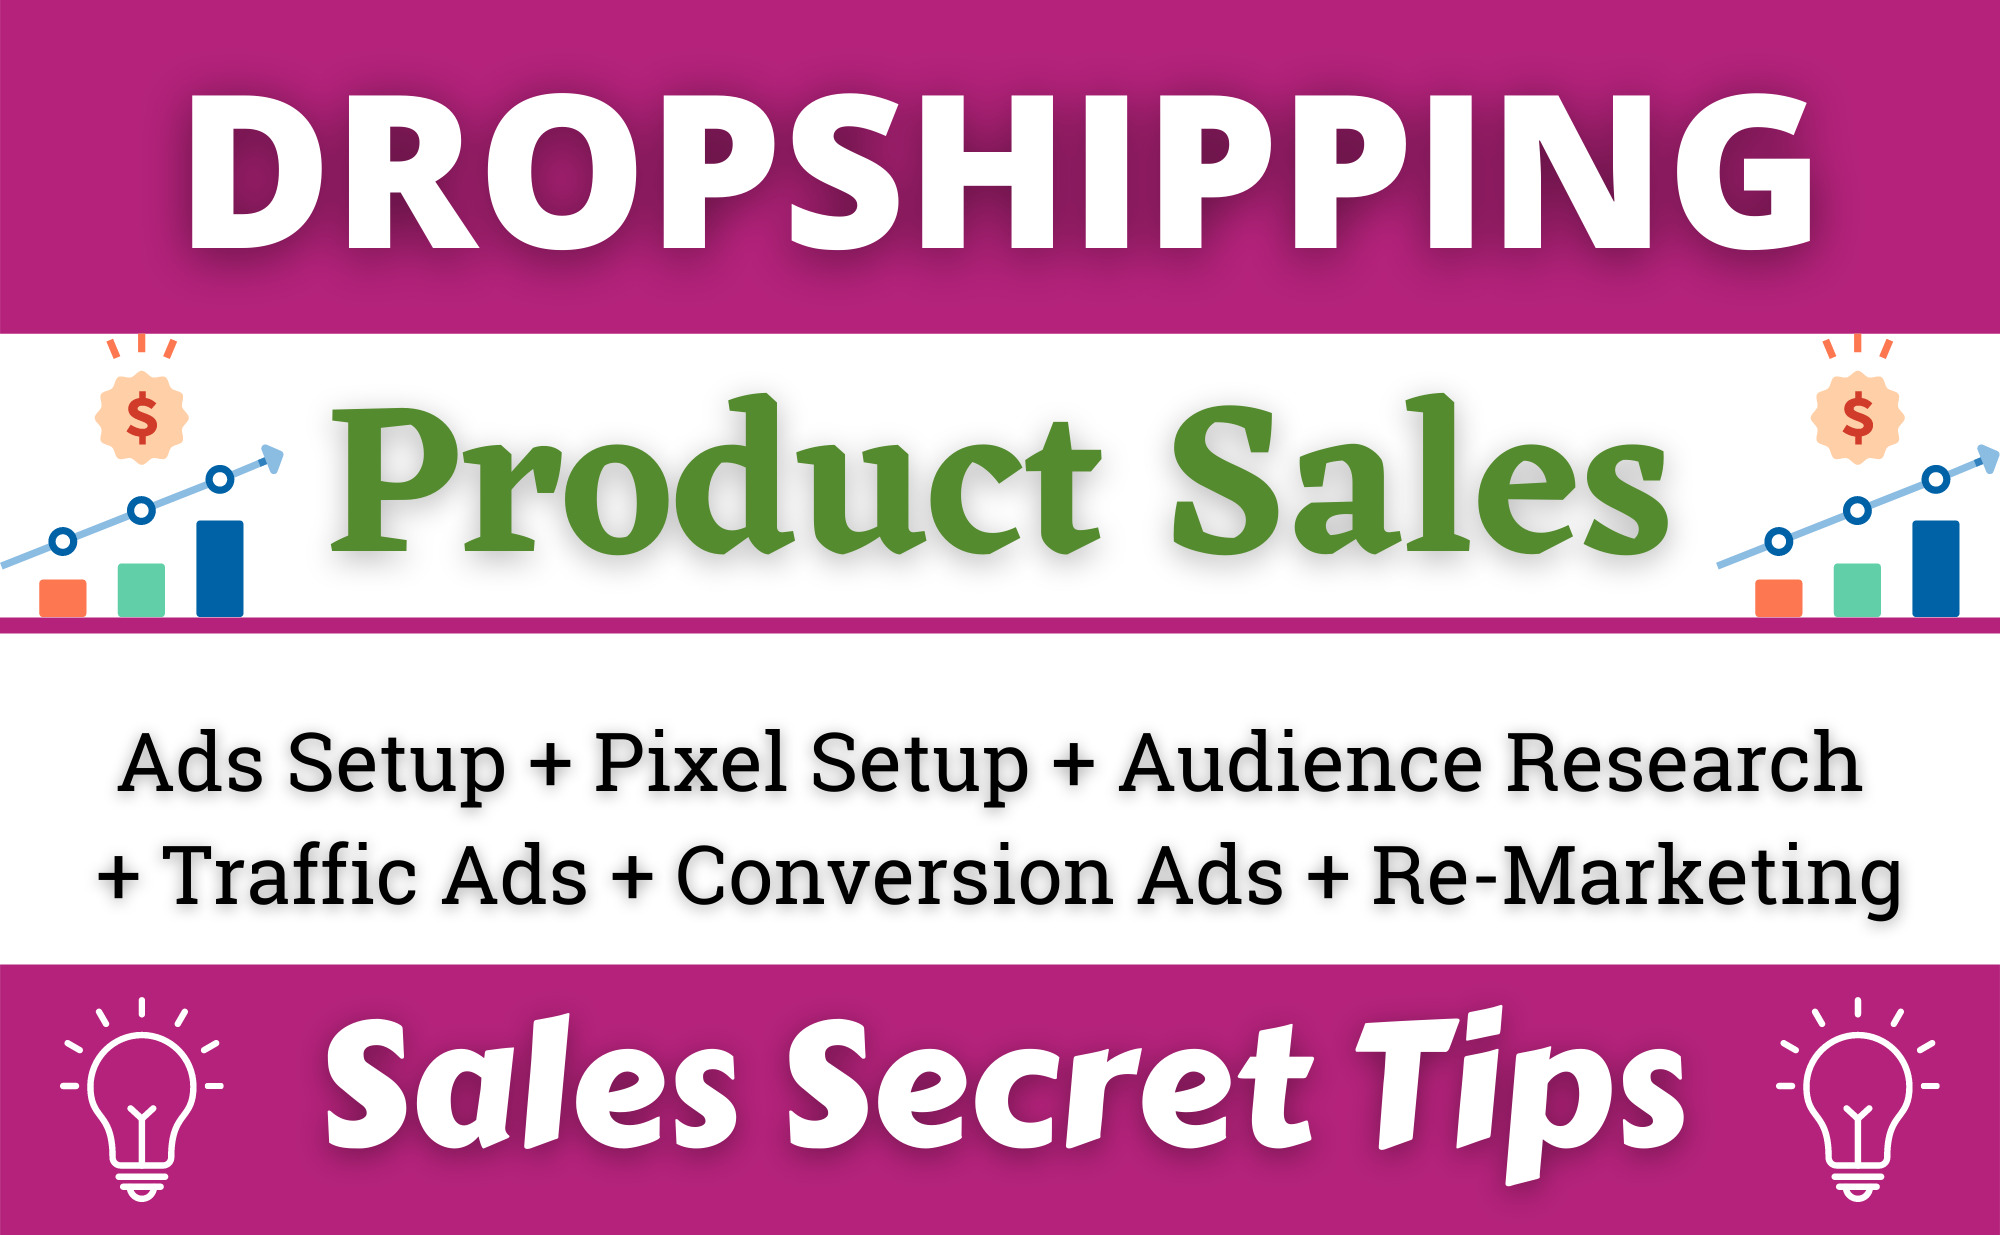 I will setup shopify facebook ads campaign for dropshipping product sales, FiverrBox